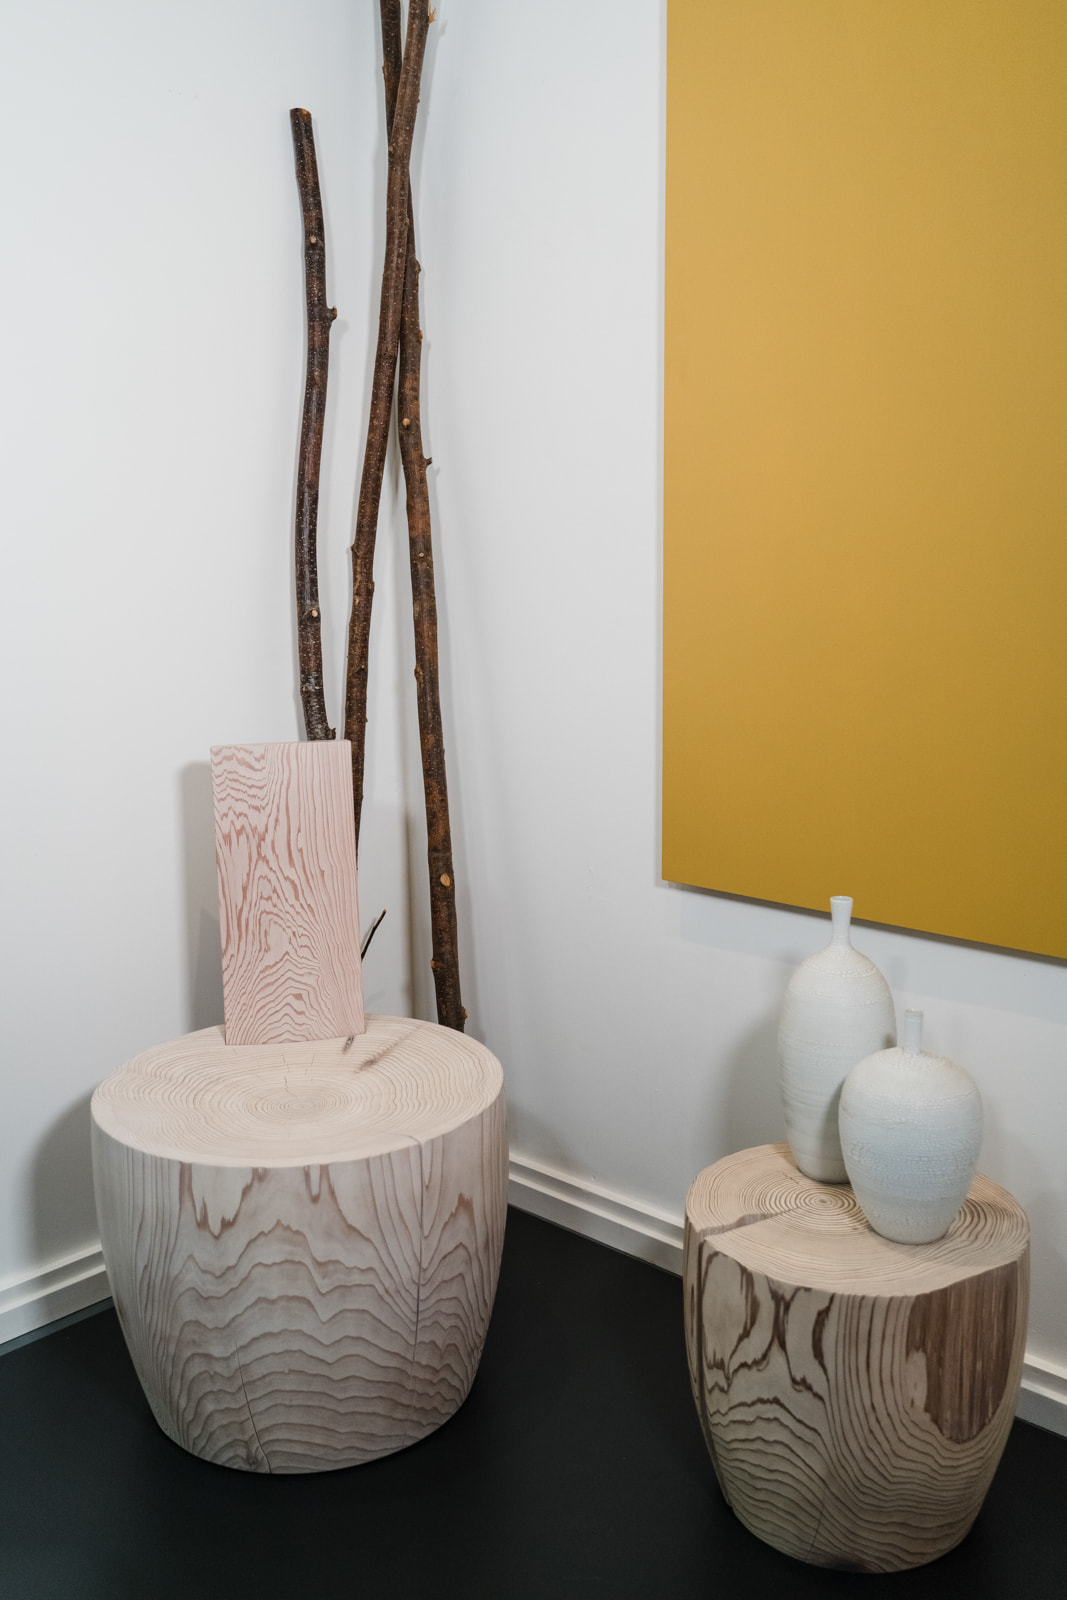 Mysa chair and DR-2T side table with a yellow wall hanging. There are white vases on the side table and decorative branches in the background.